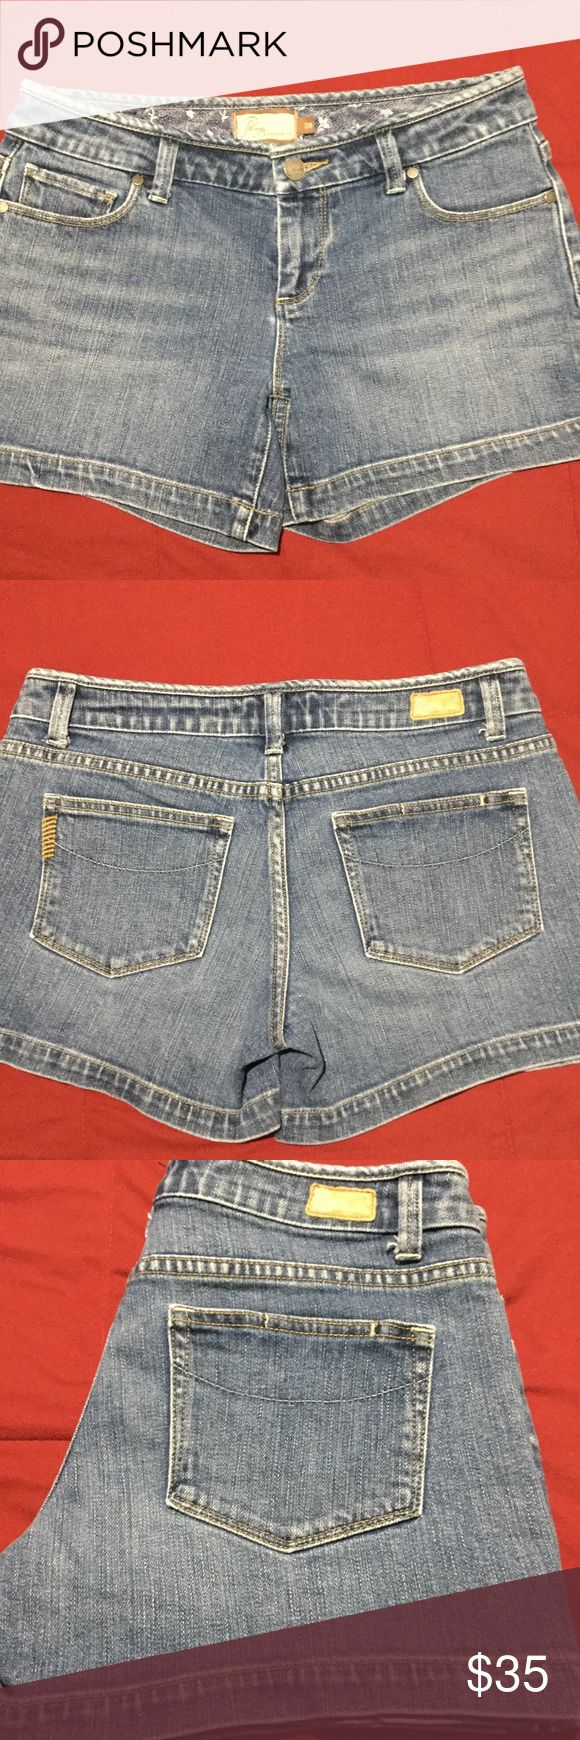 PAIGE PREMIUM DENIM Stretch Canyon Denim Shorts PAIGE PREMIUM DENIM Stretch Cotton Canyon Denim Shorts.shorts are in excellent preowned condition, Paige Jeans Shorts Jean Shorts